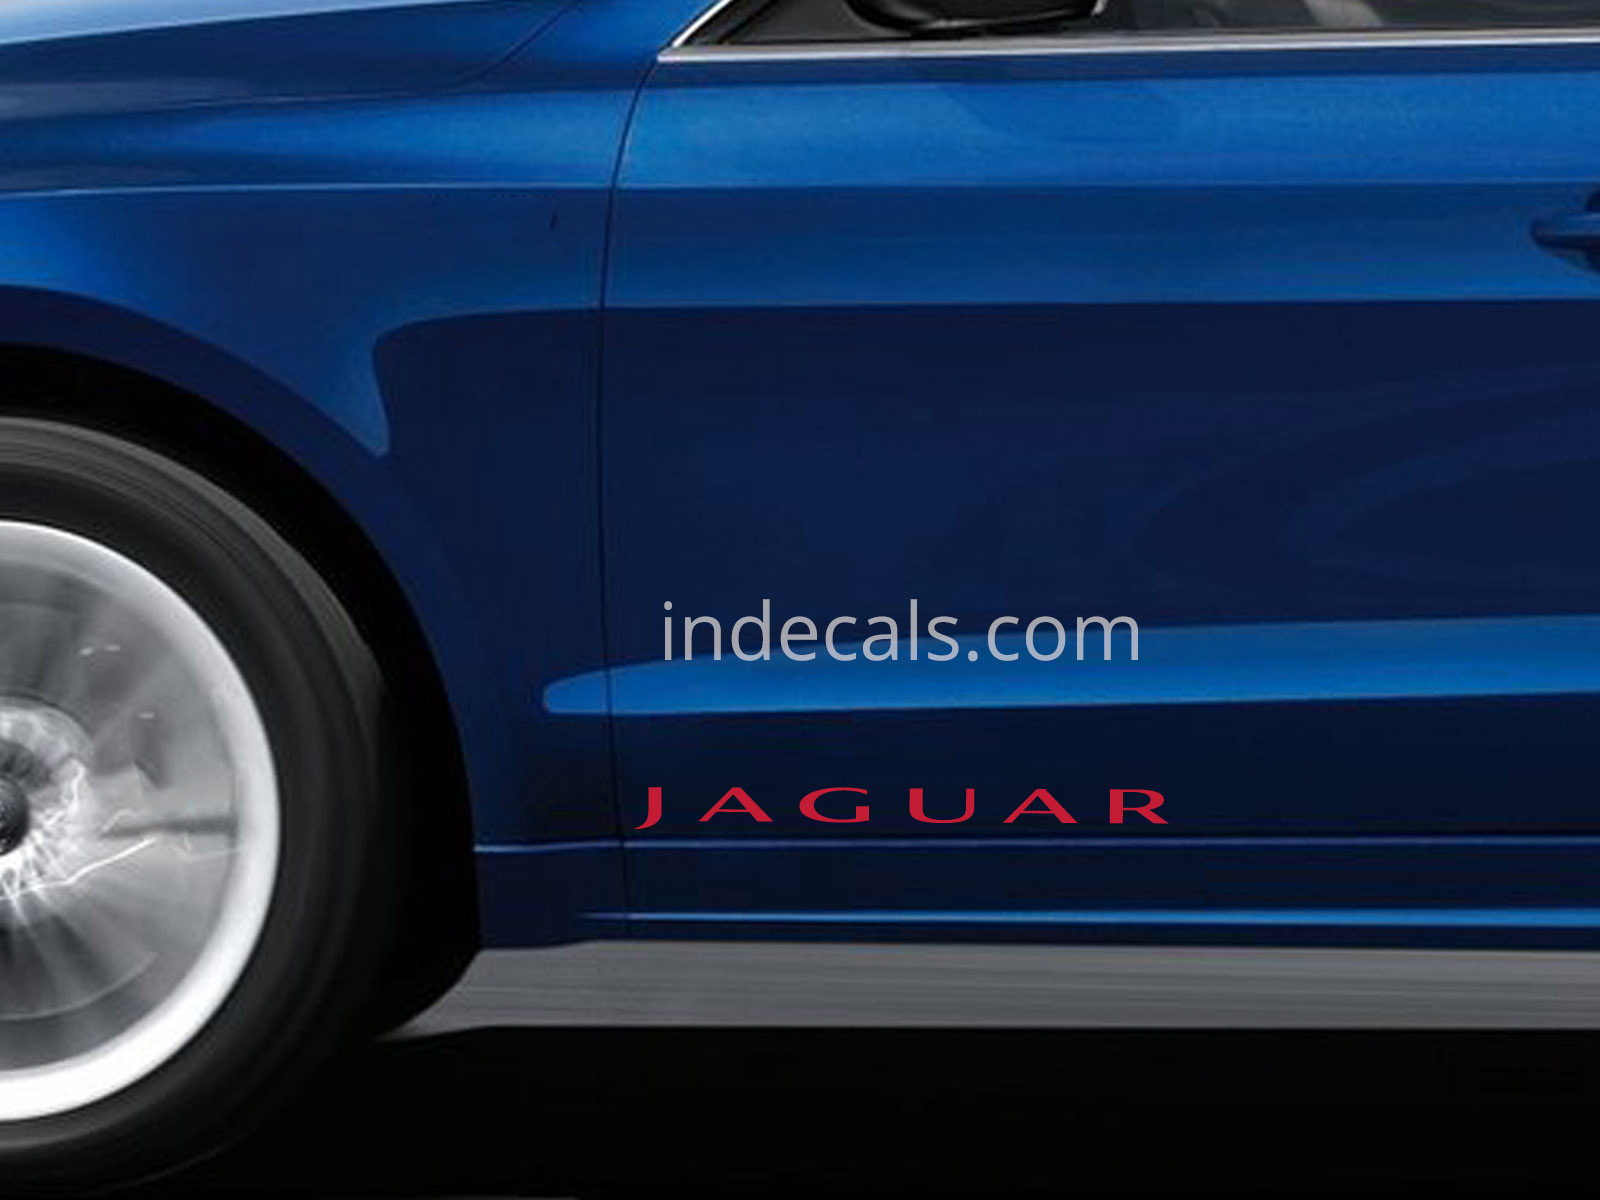 2 x Jaguar Stickers for Doors Large - Red